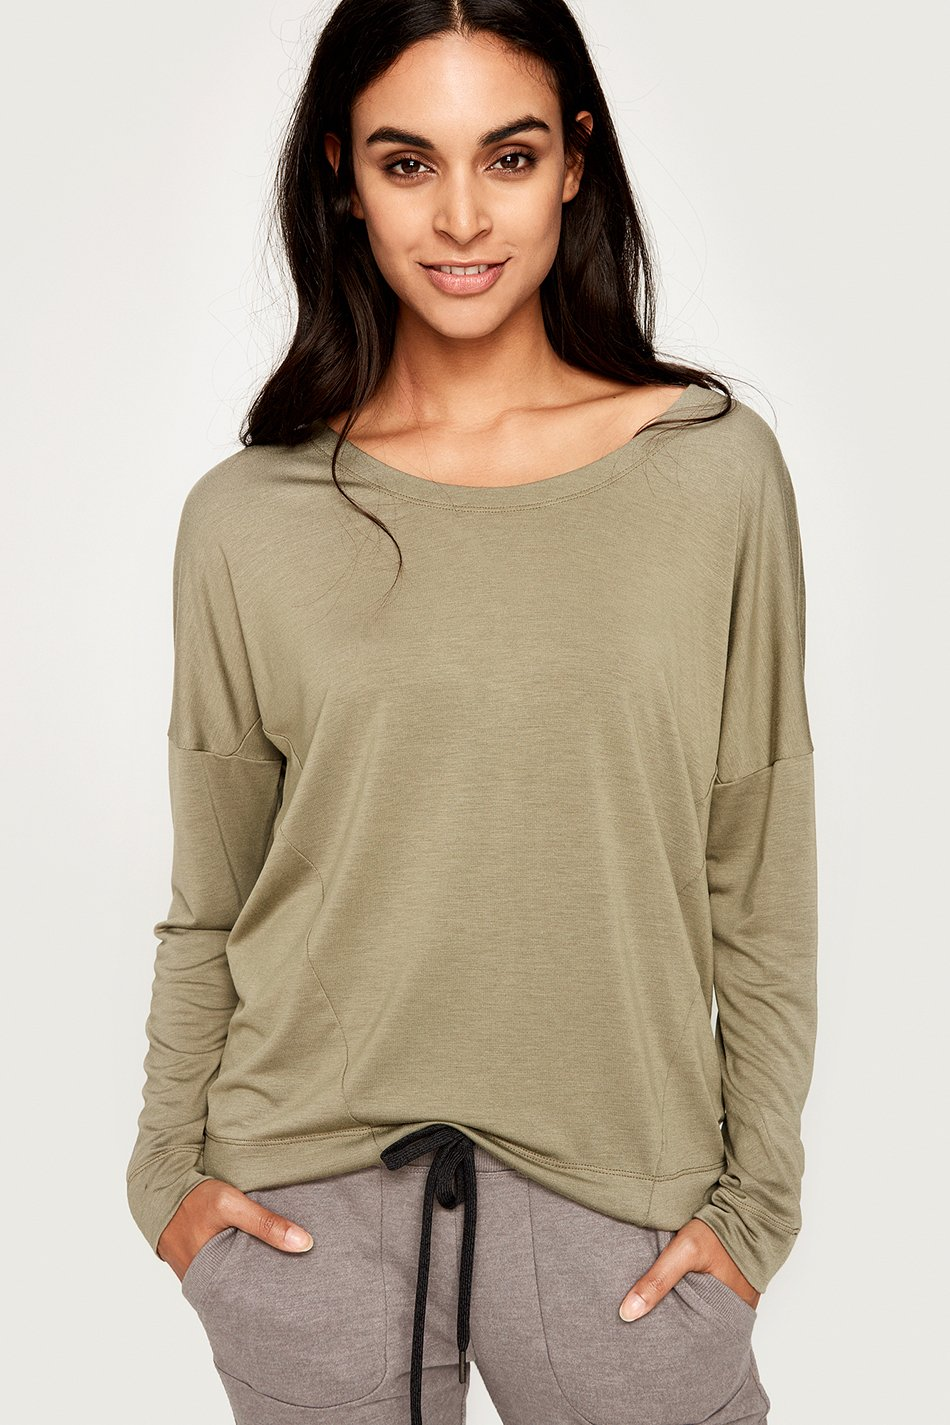 Lole Womens Able Top